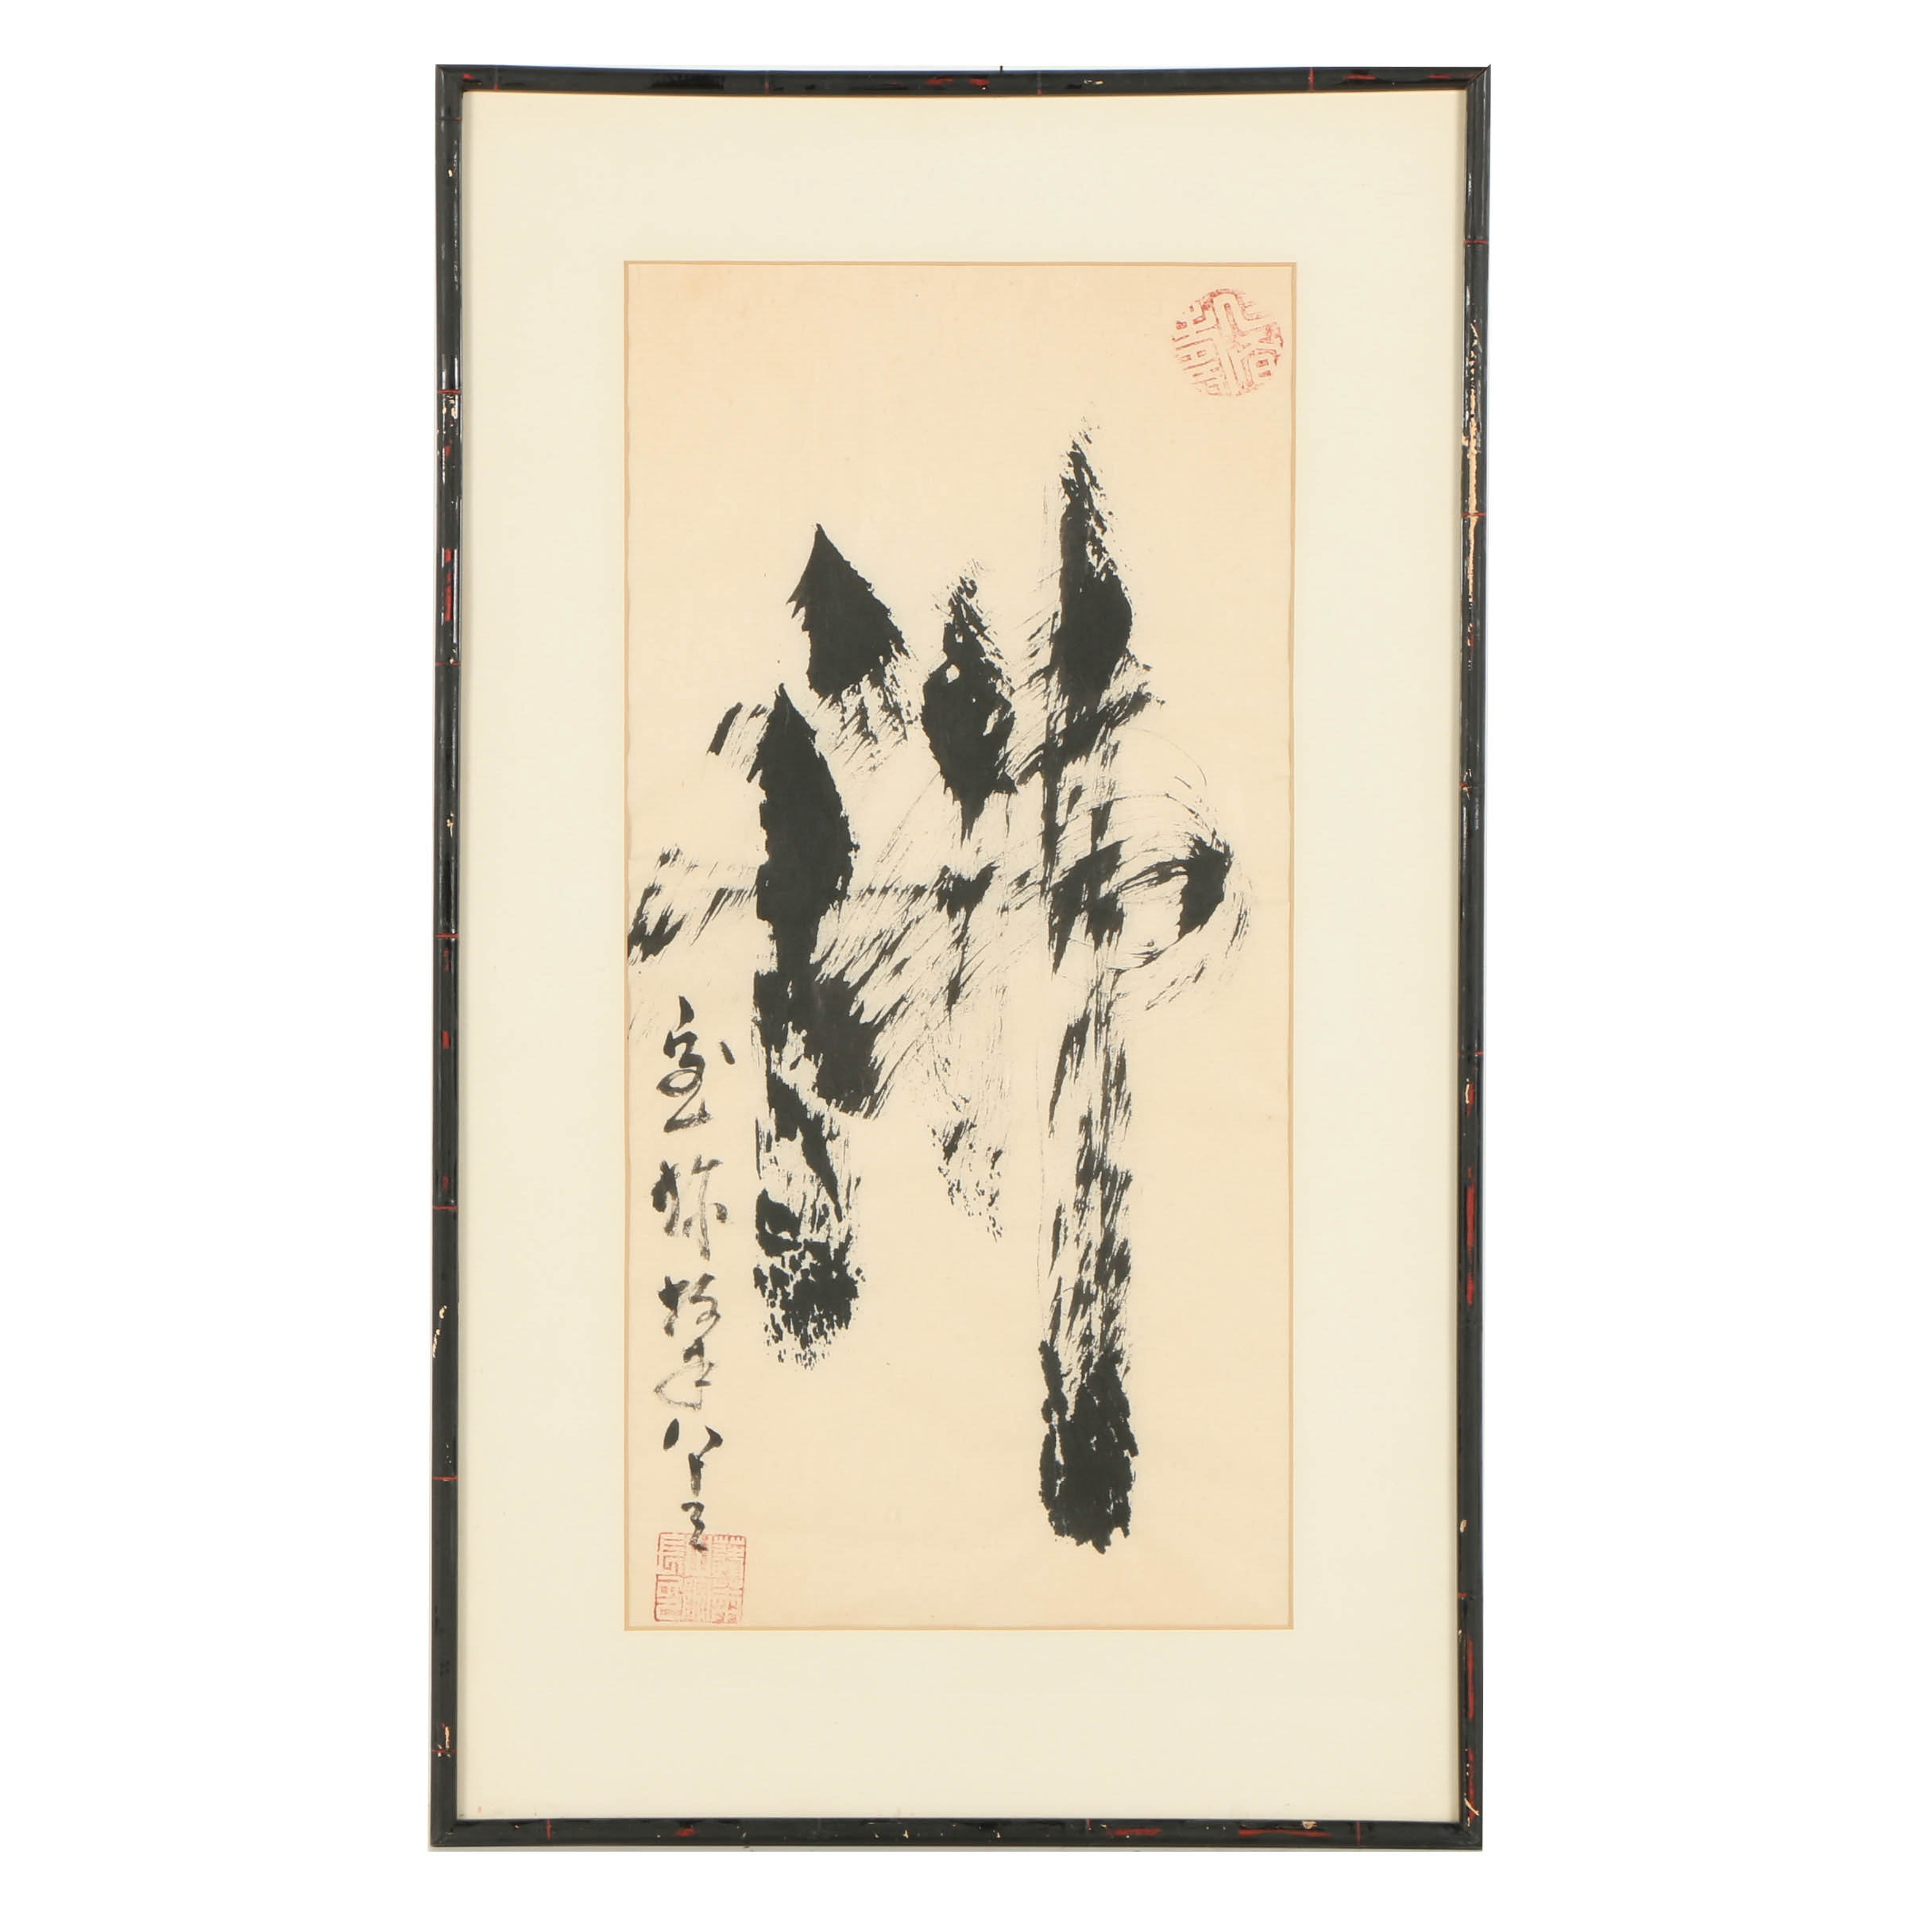 Japanese Calligraphy on Rice Paper from Takarazuka, Hyogo Prefecture